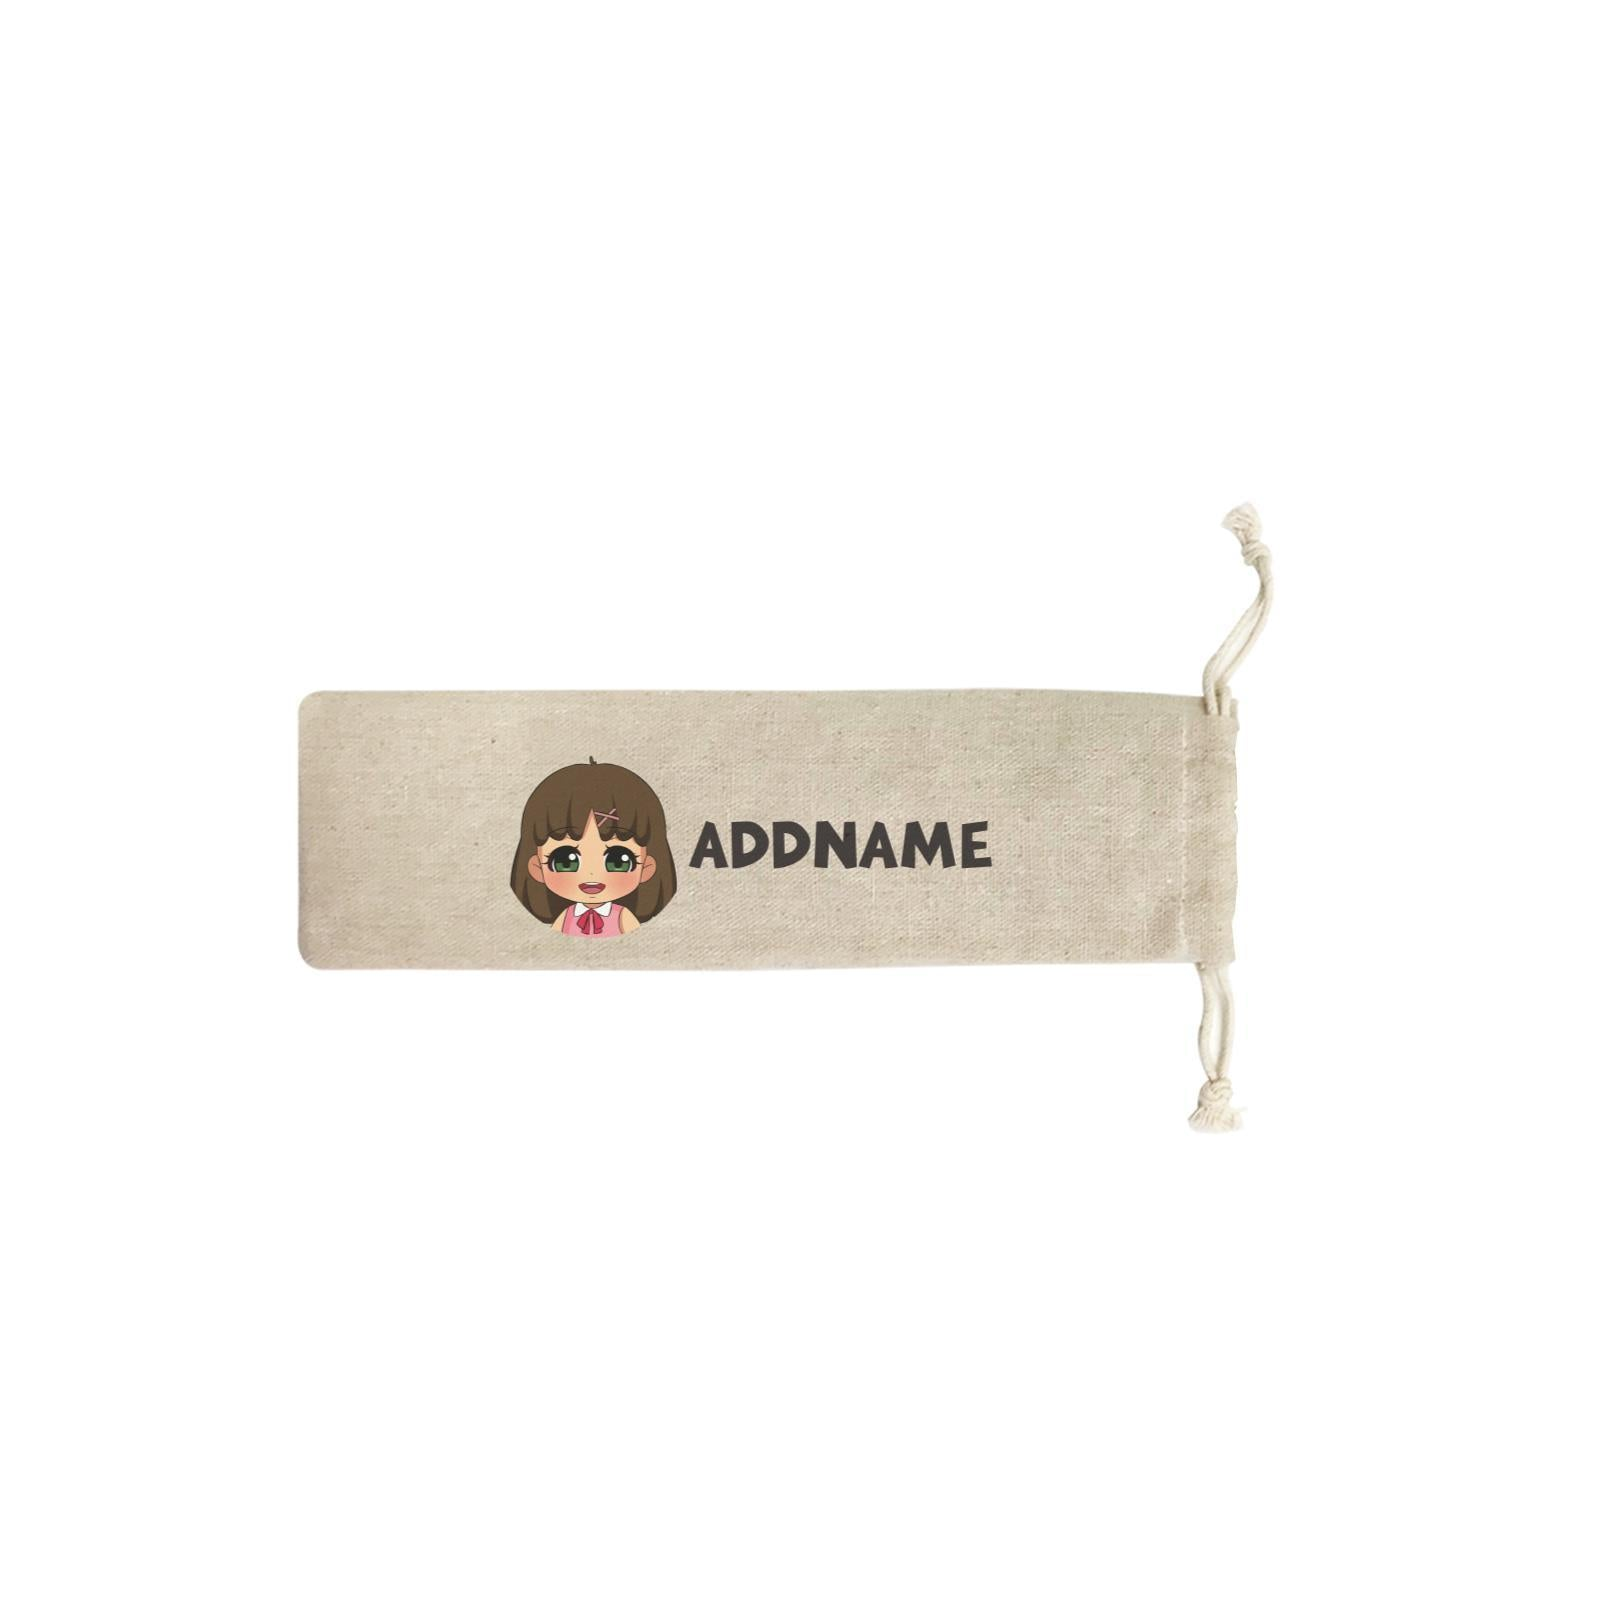 Children's Day Gift Series Little Chinese Girl Addname SB Straw Pouch (No Straws included)